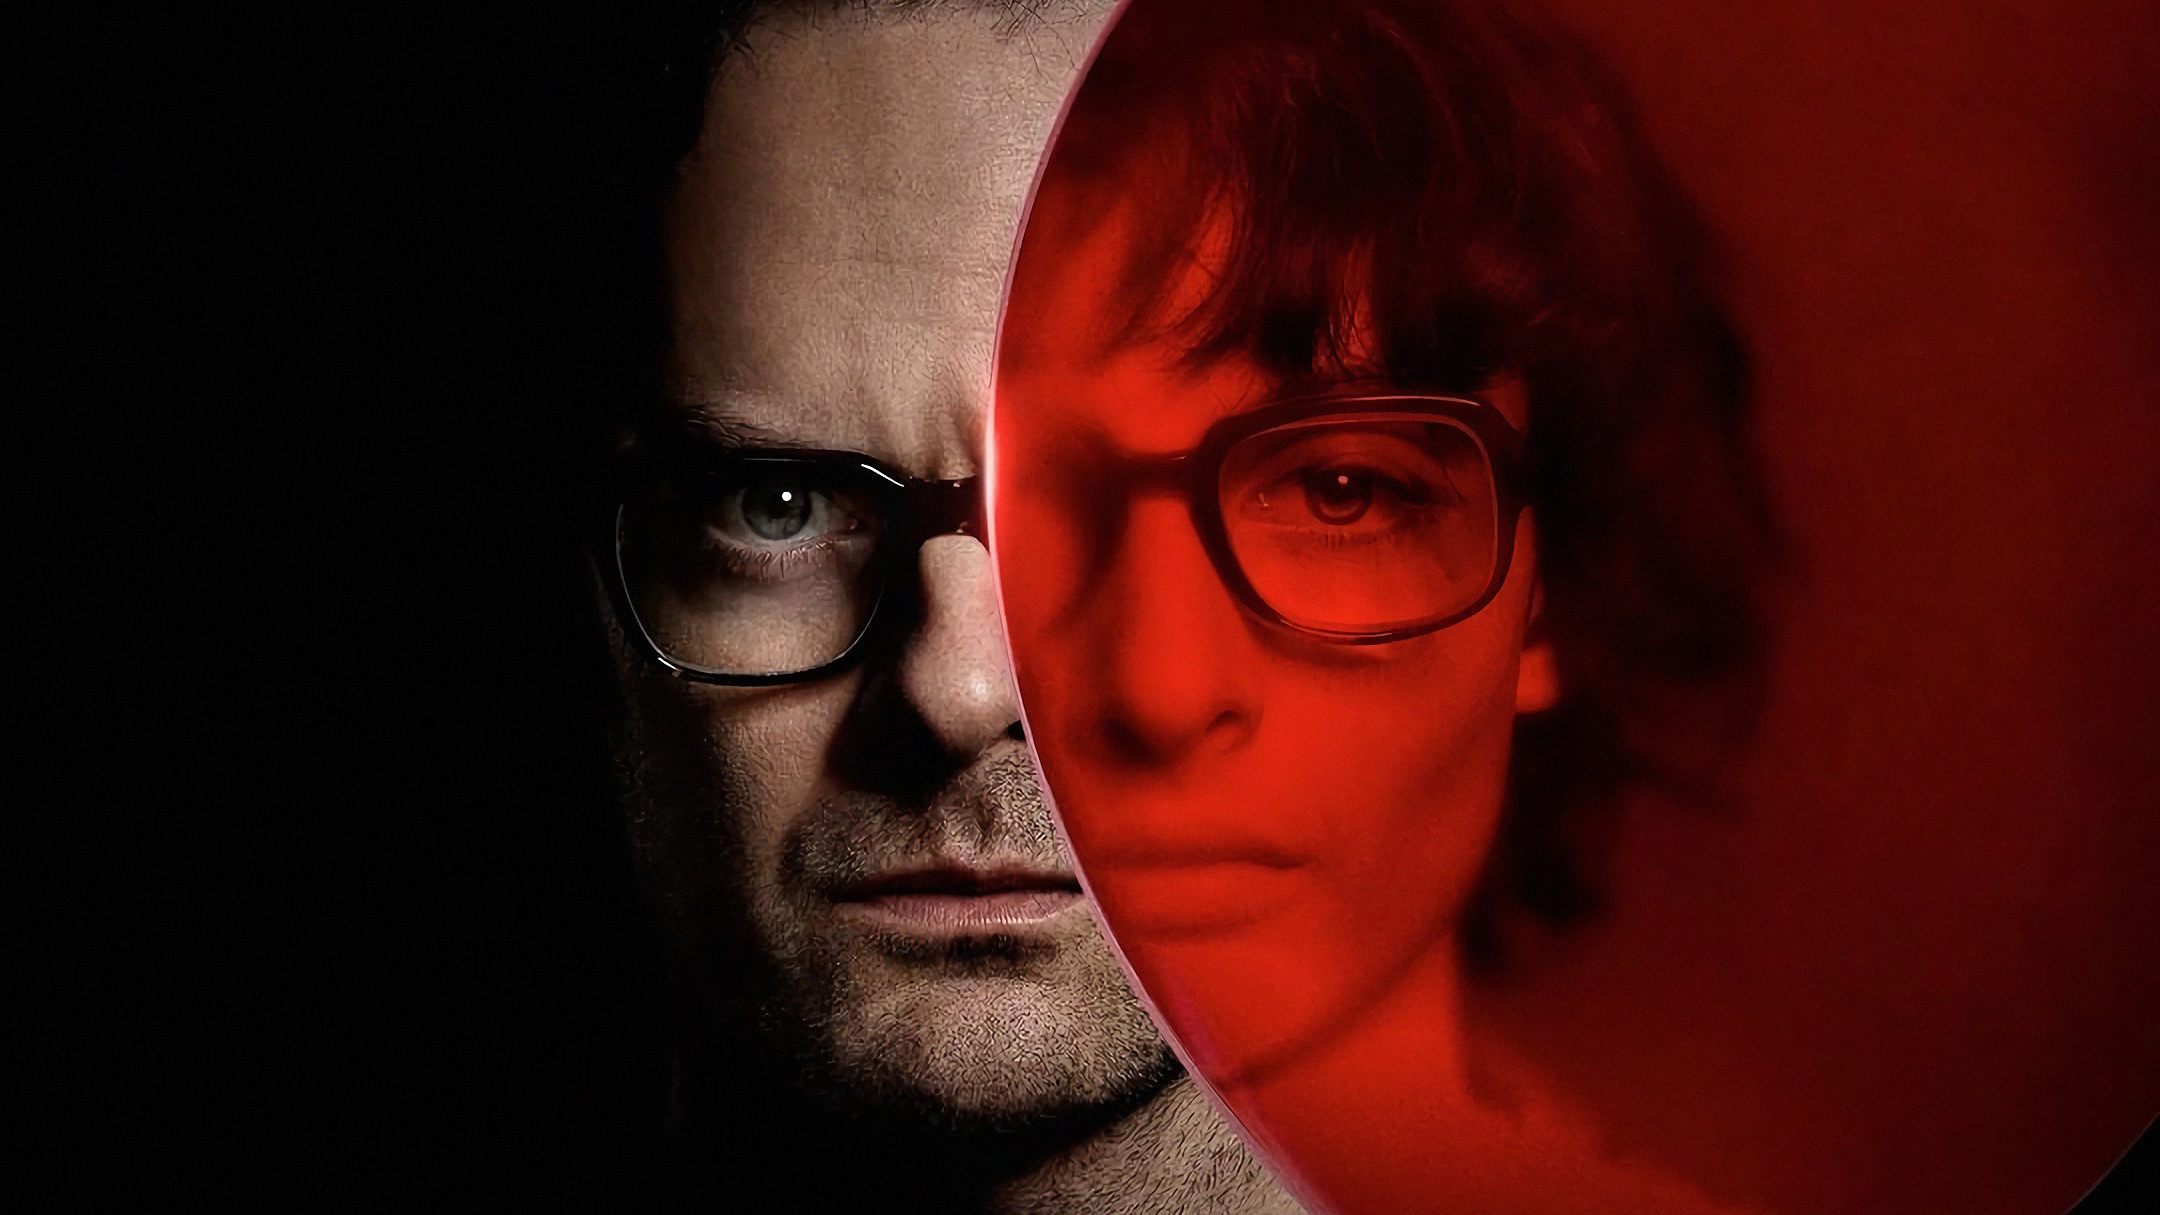 Bill Hader As Richie Tozier In It Chapter 2 Hd Movies 4k